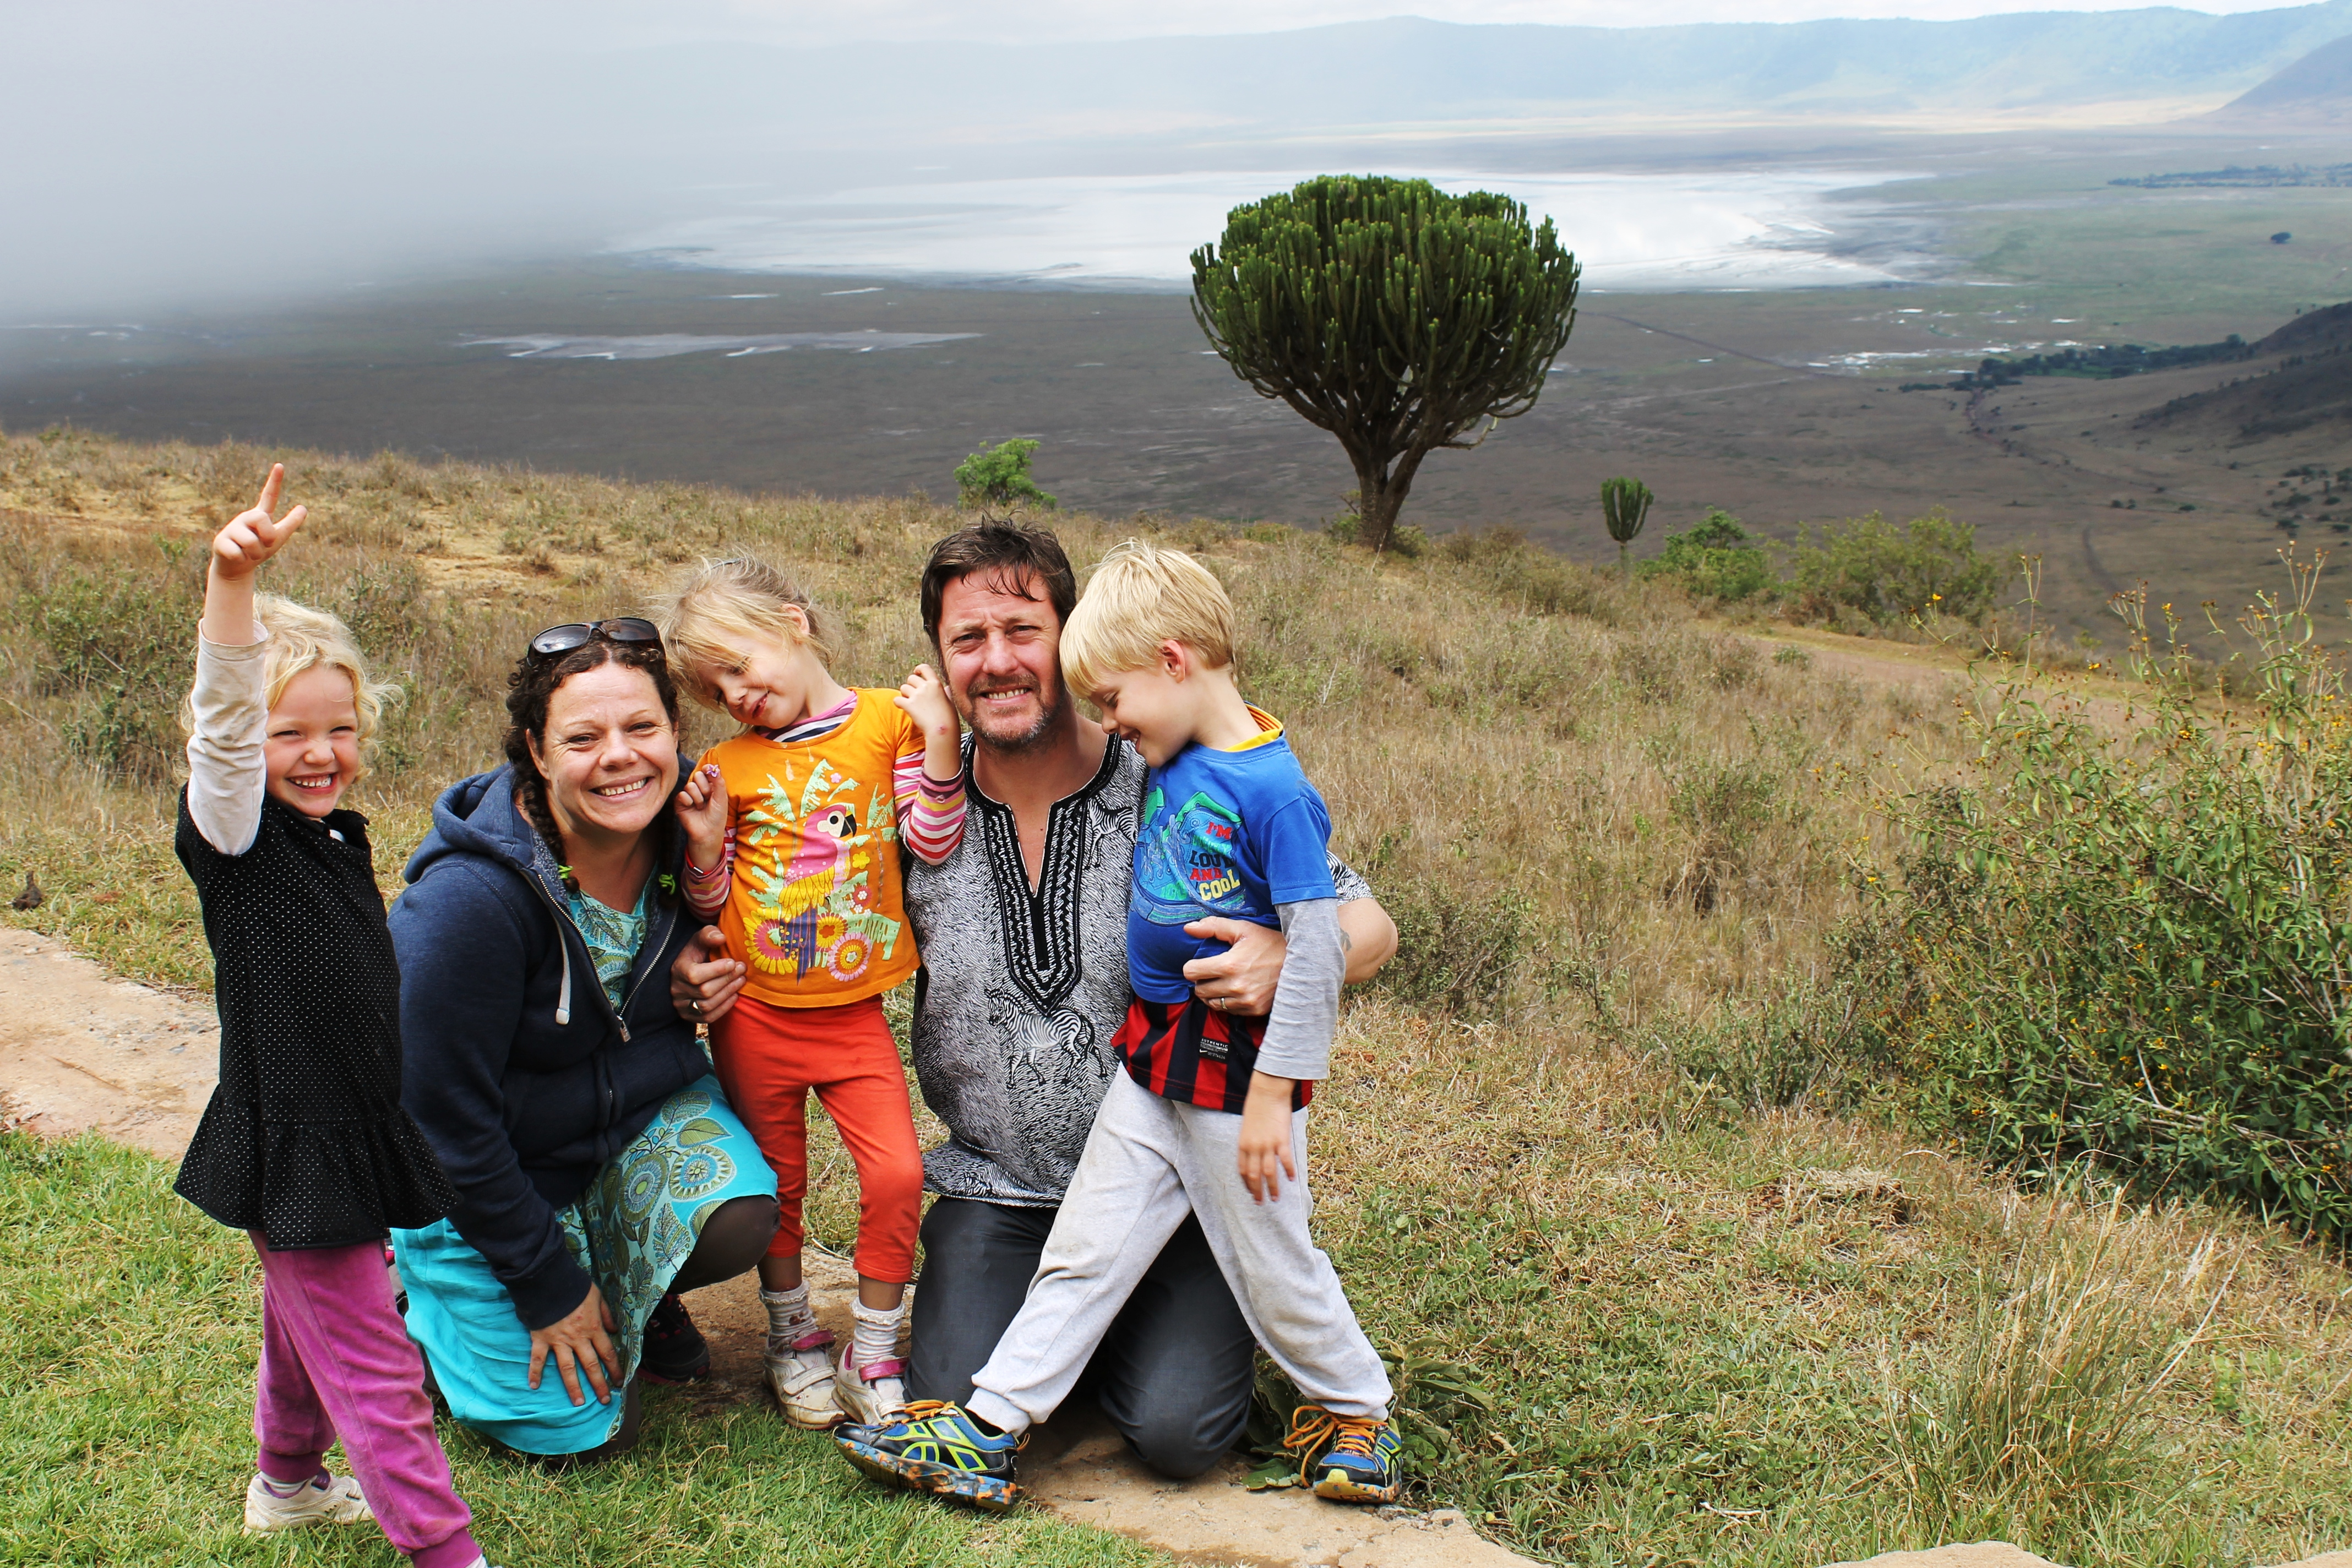 Frida, Ali, Lottie, Mark and Leon on the edge of the Ngorogoro Crater.